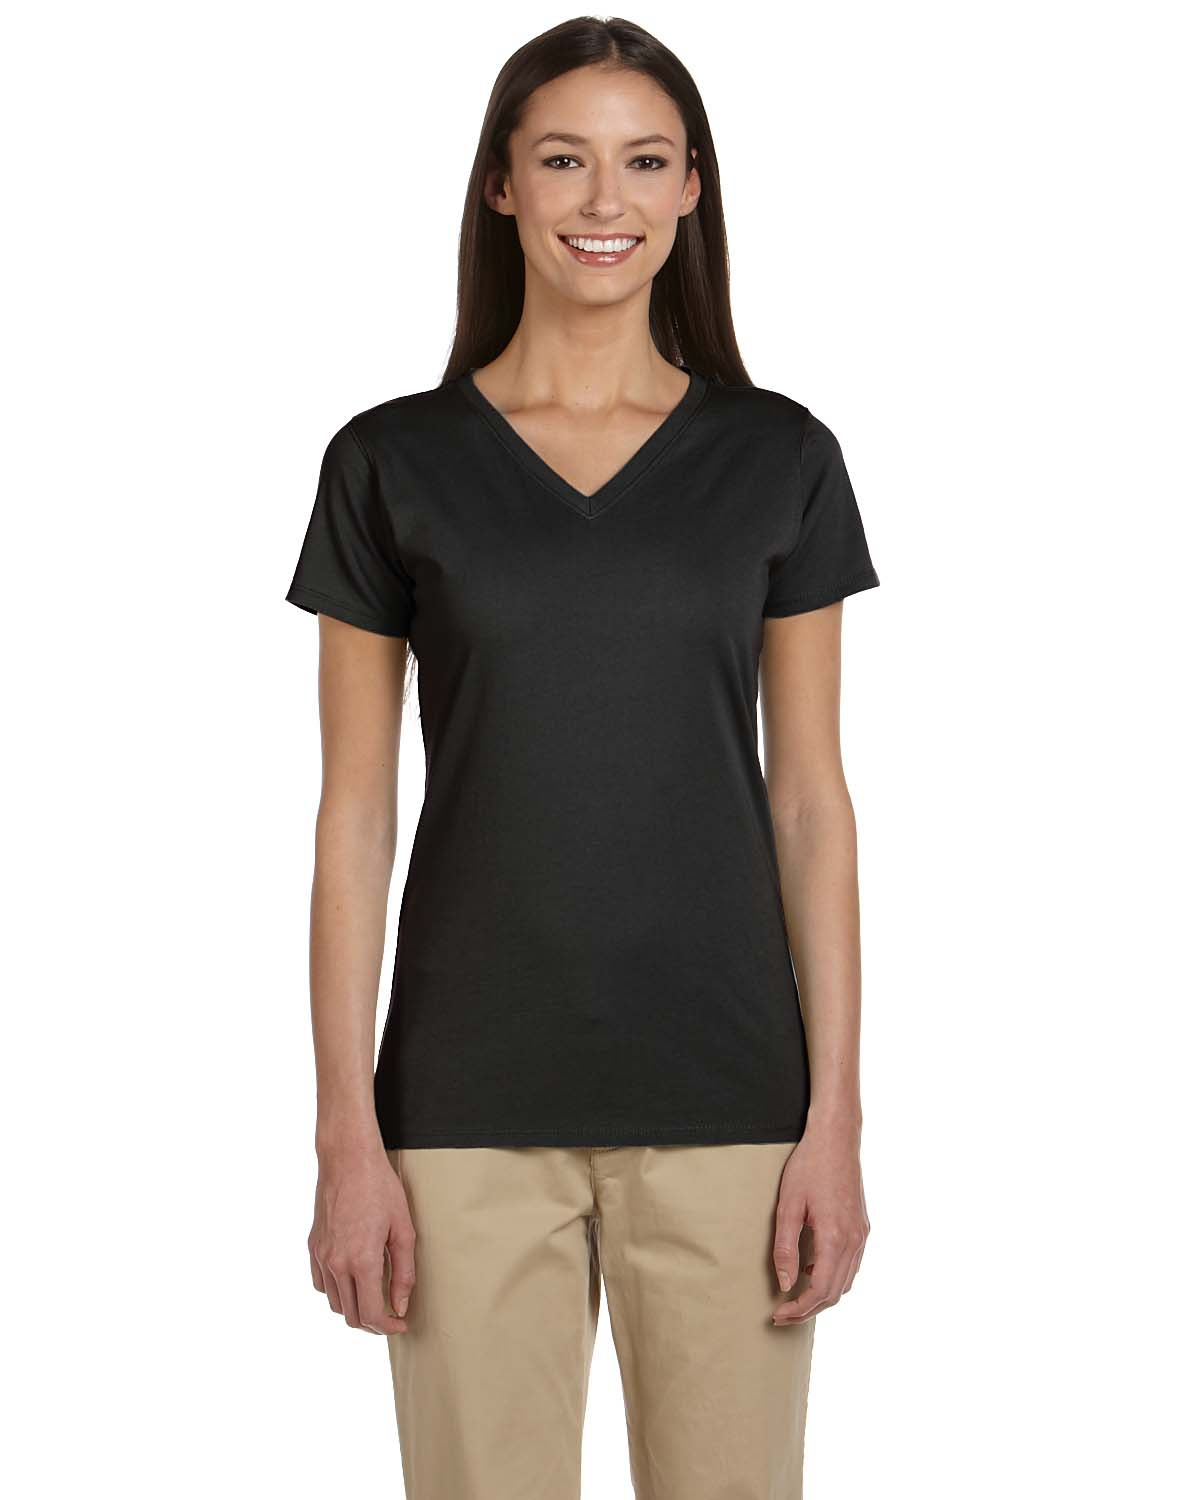 Certified organic cotton women 39 s short sleeve v neck t for V neck black t shirt